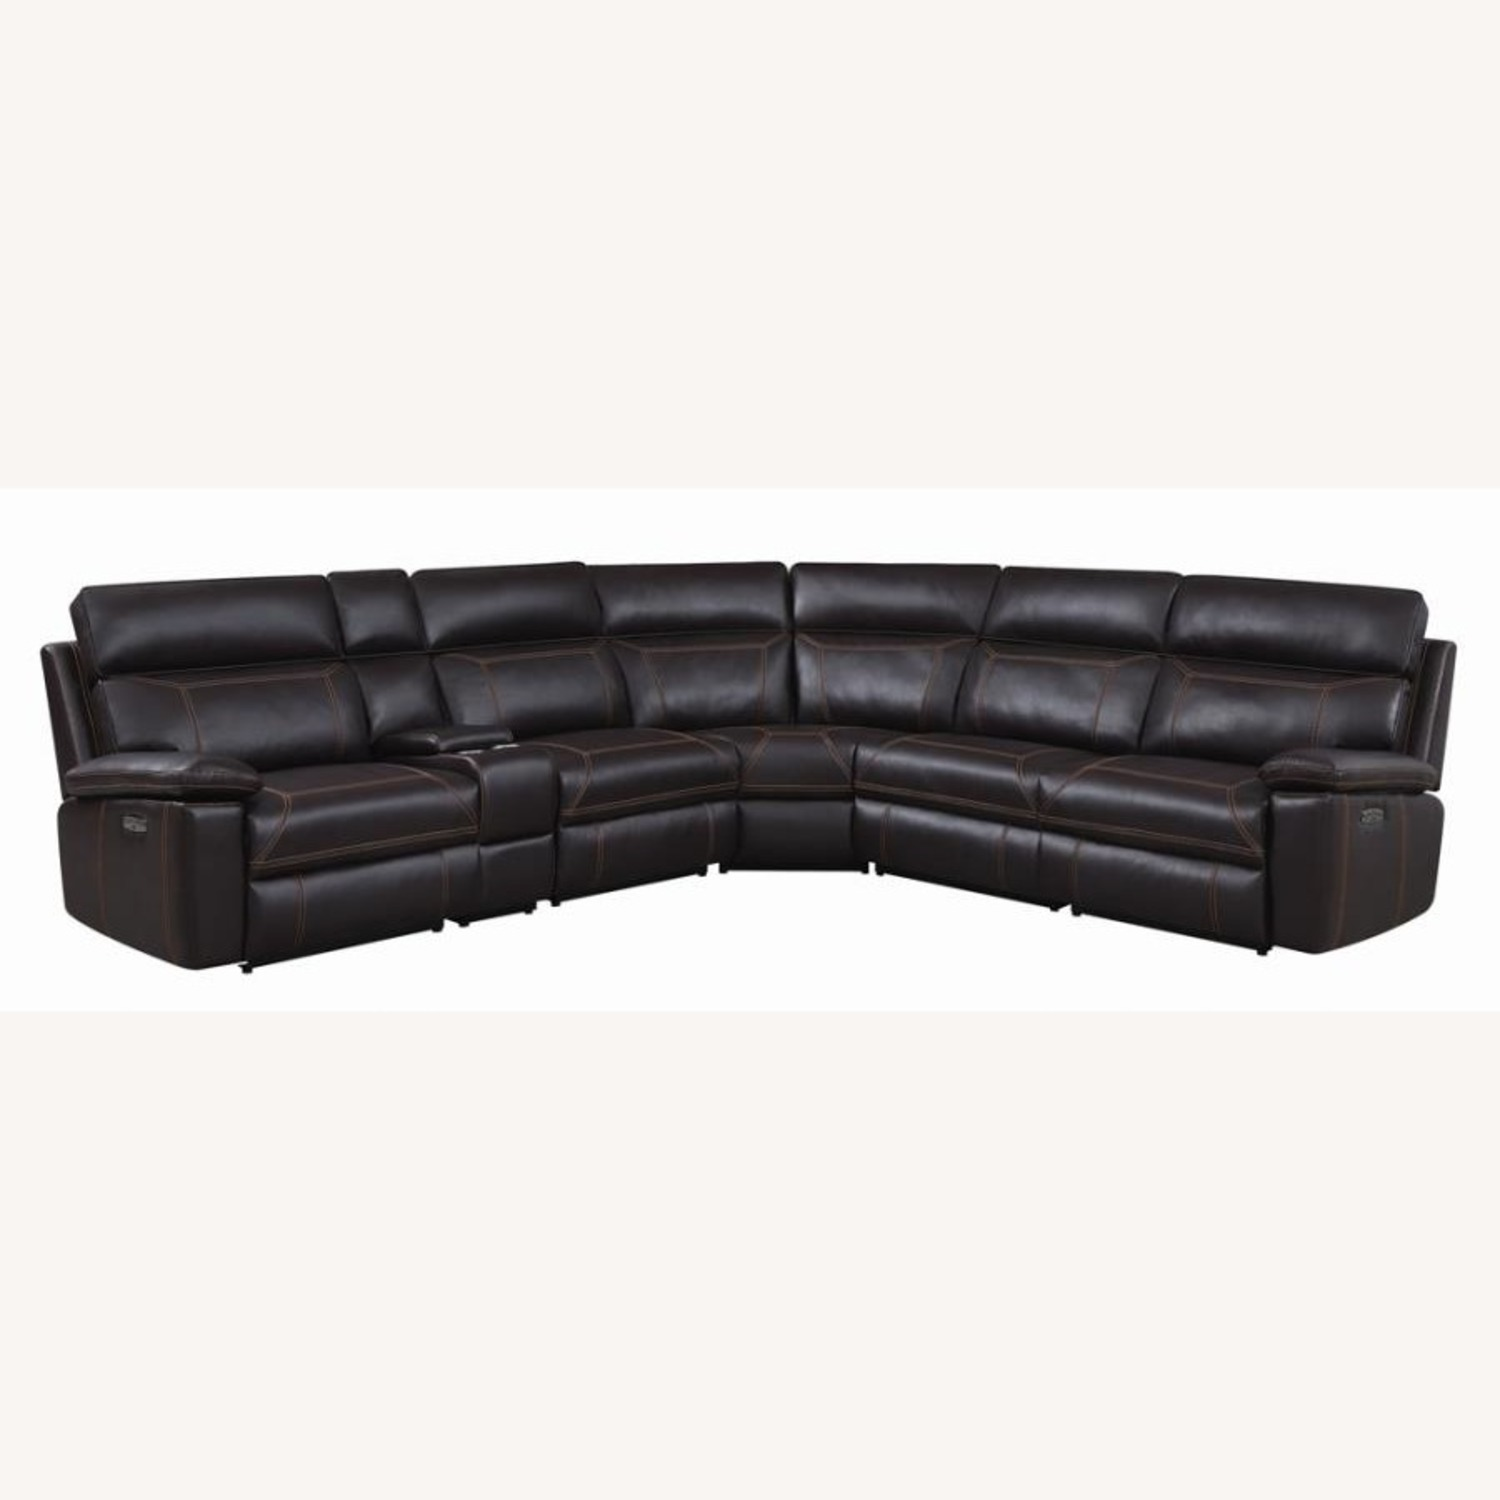 6-Piece Power2 Sectional In Brown Leatherette - image-0